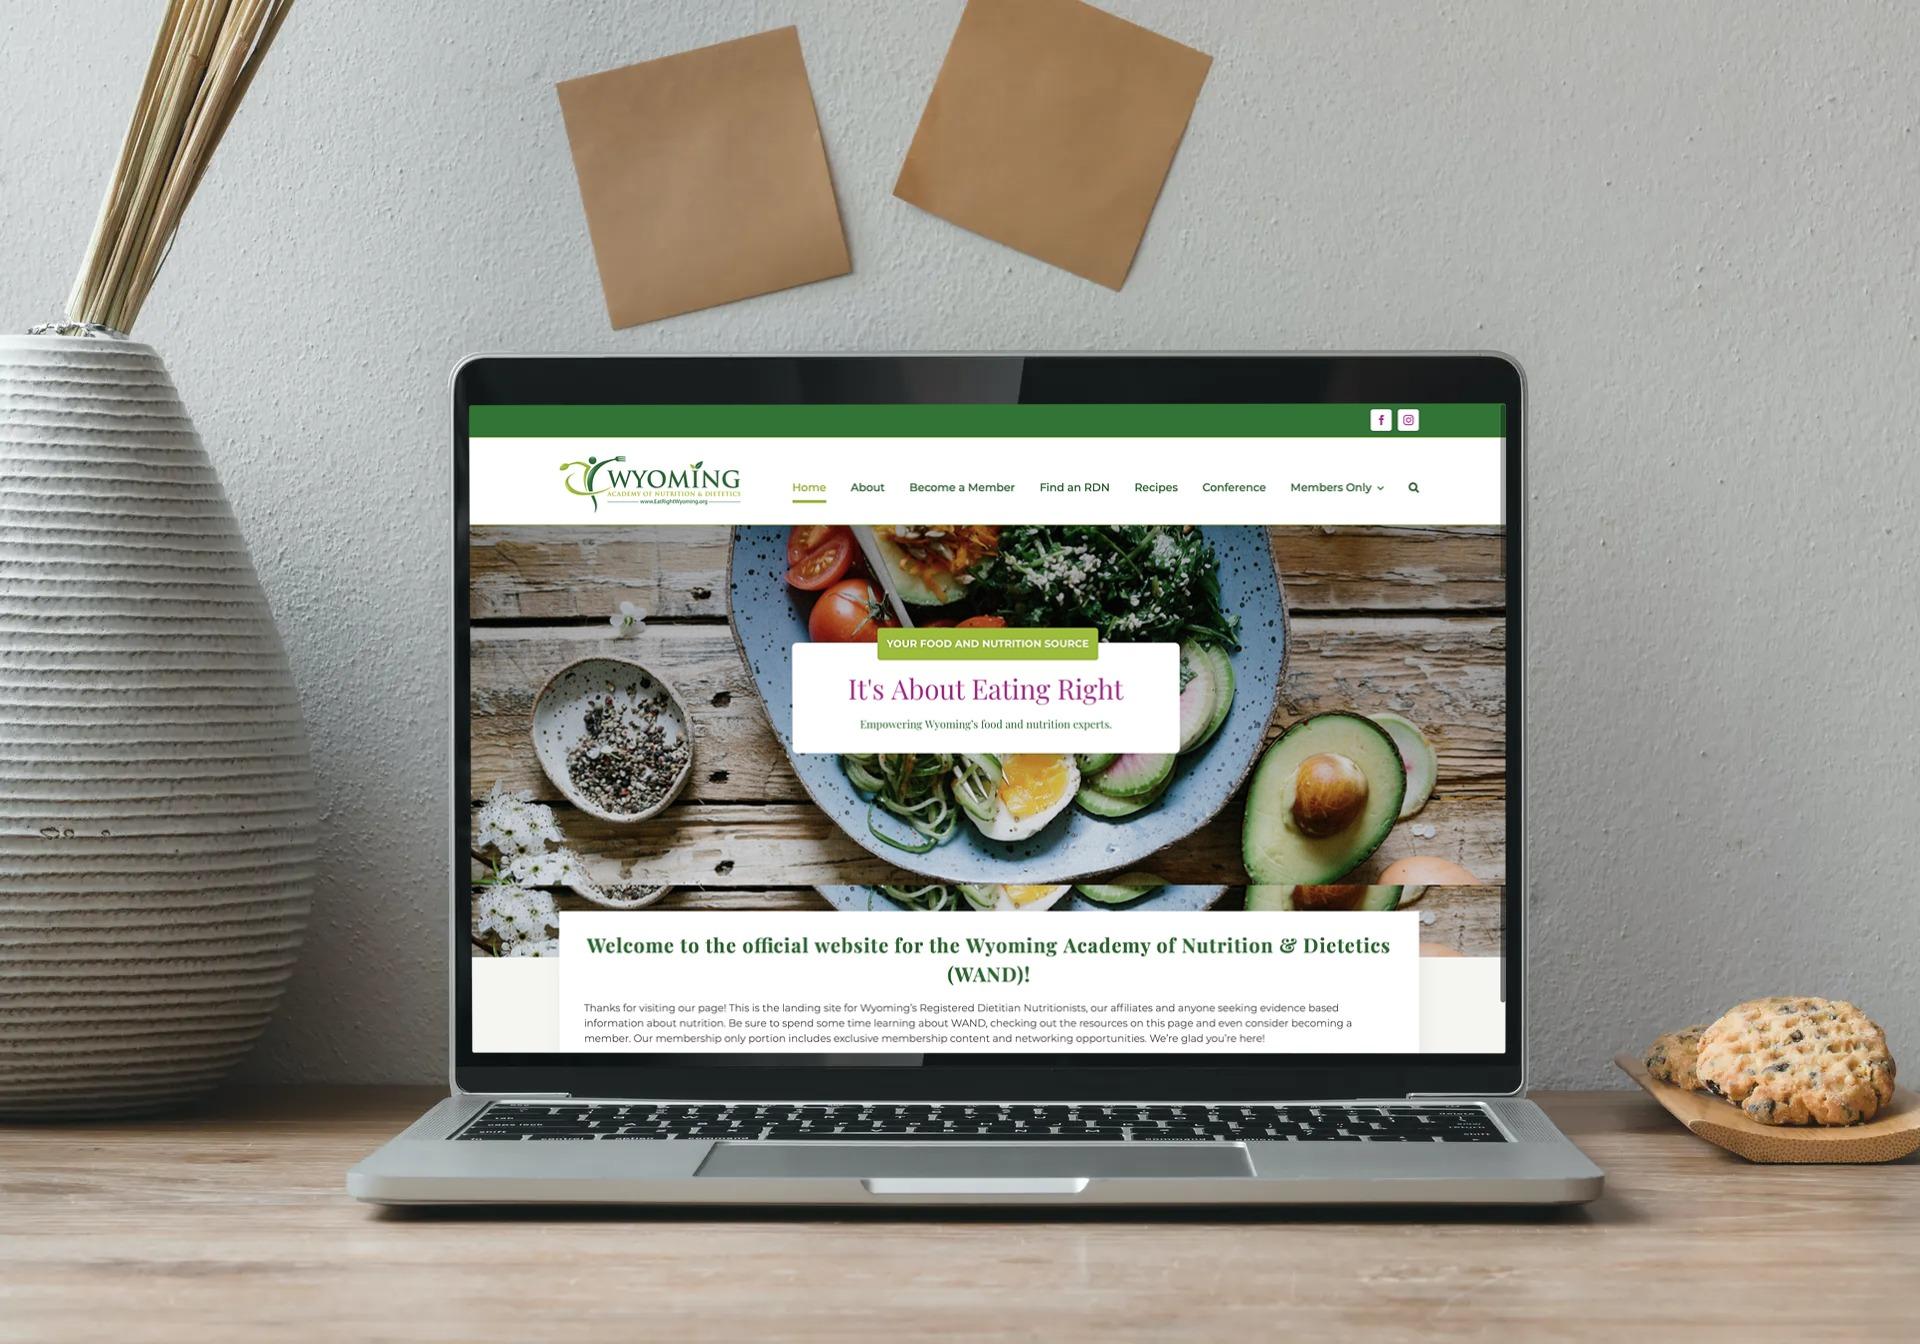 Wyoming Academy of Nutrition & Dietetics Website Design